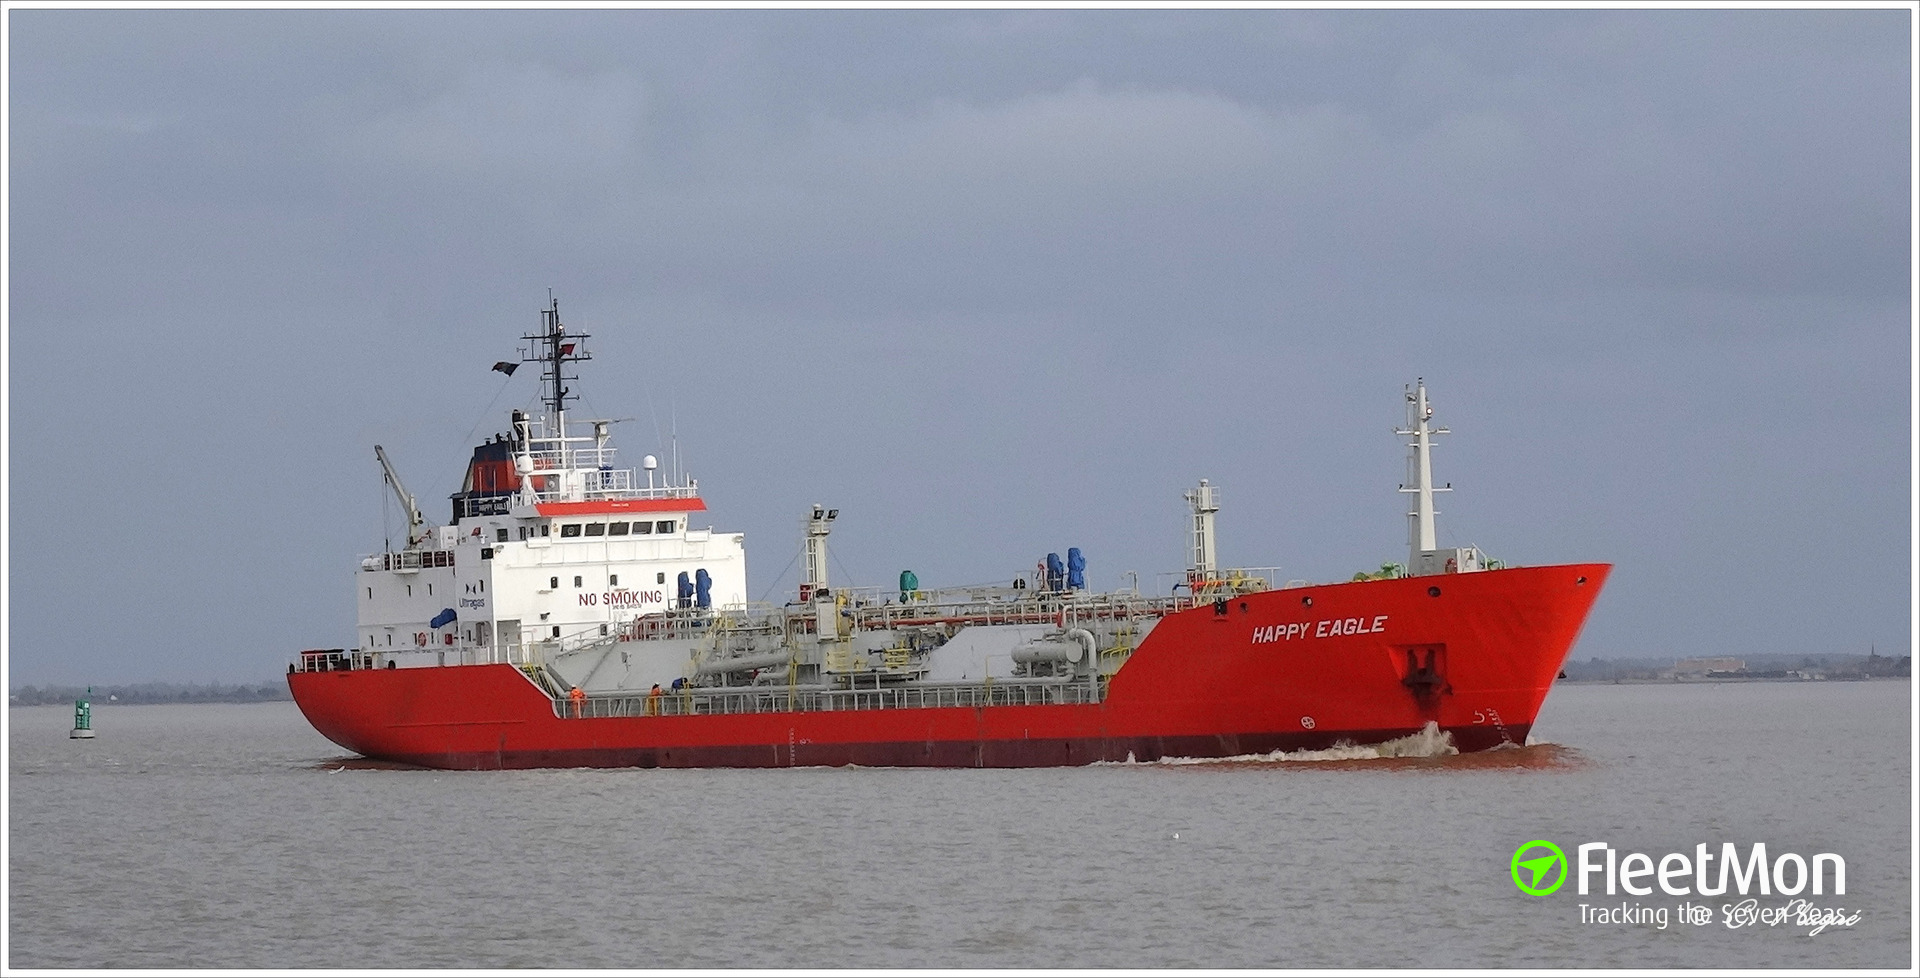 LPG tanker Happy Eagle collided with two bridges, Rotterdam